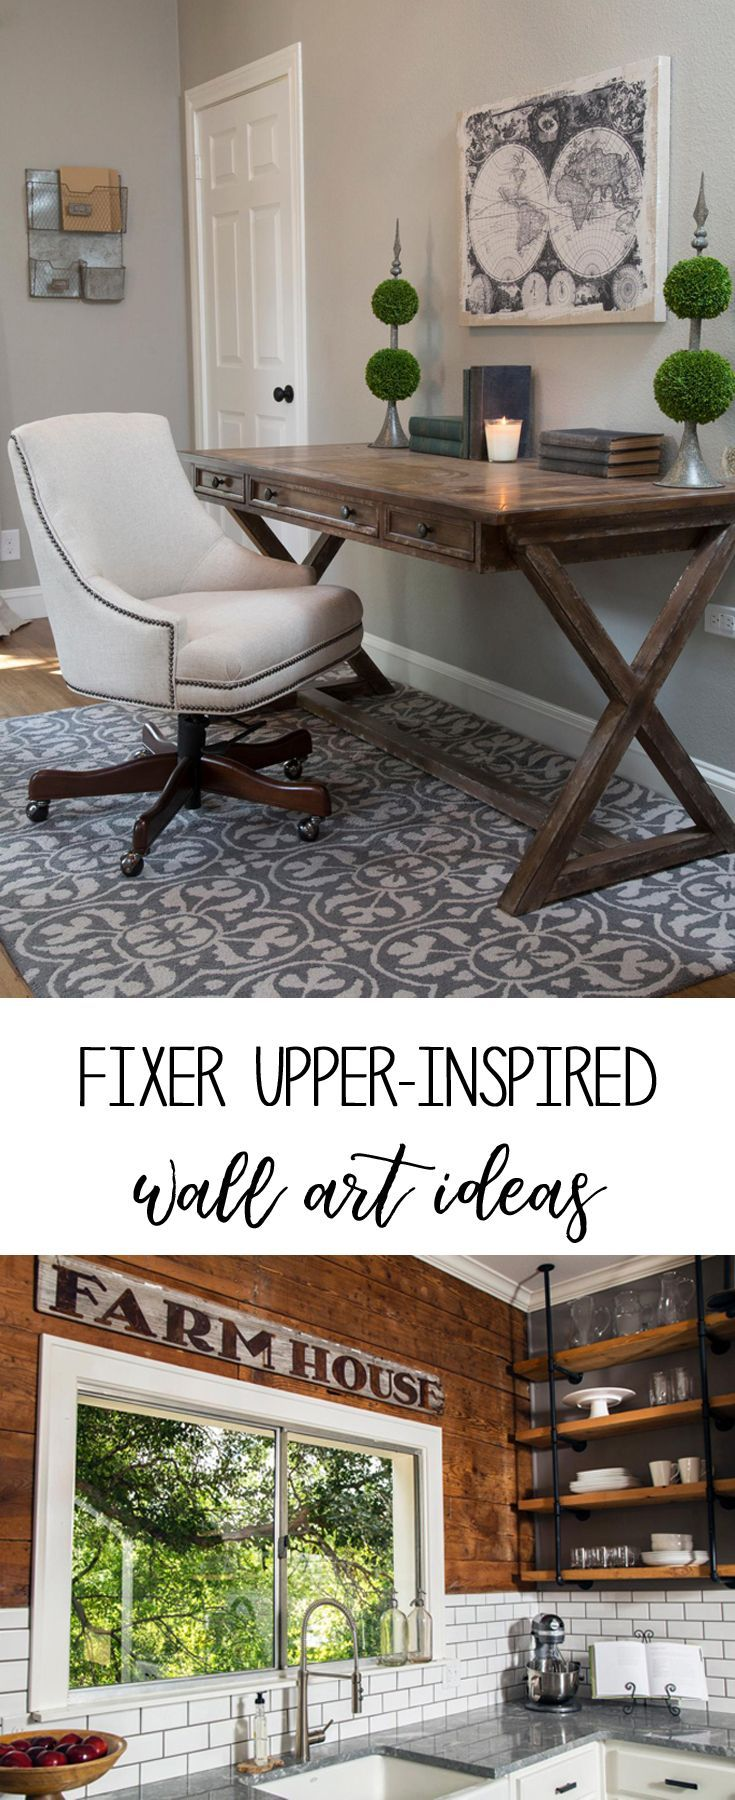 Easy wall art ideas inspired by fixer upper walls farmhouse style